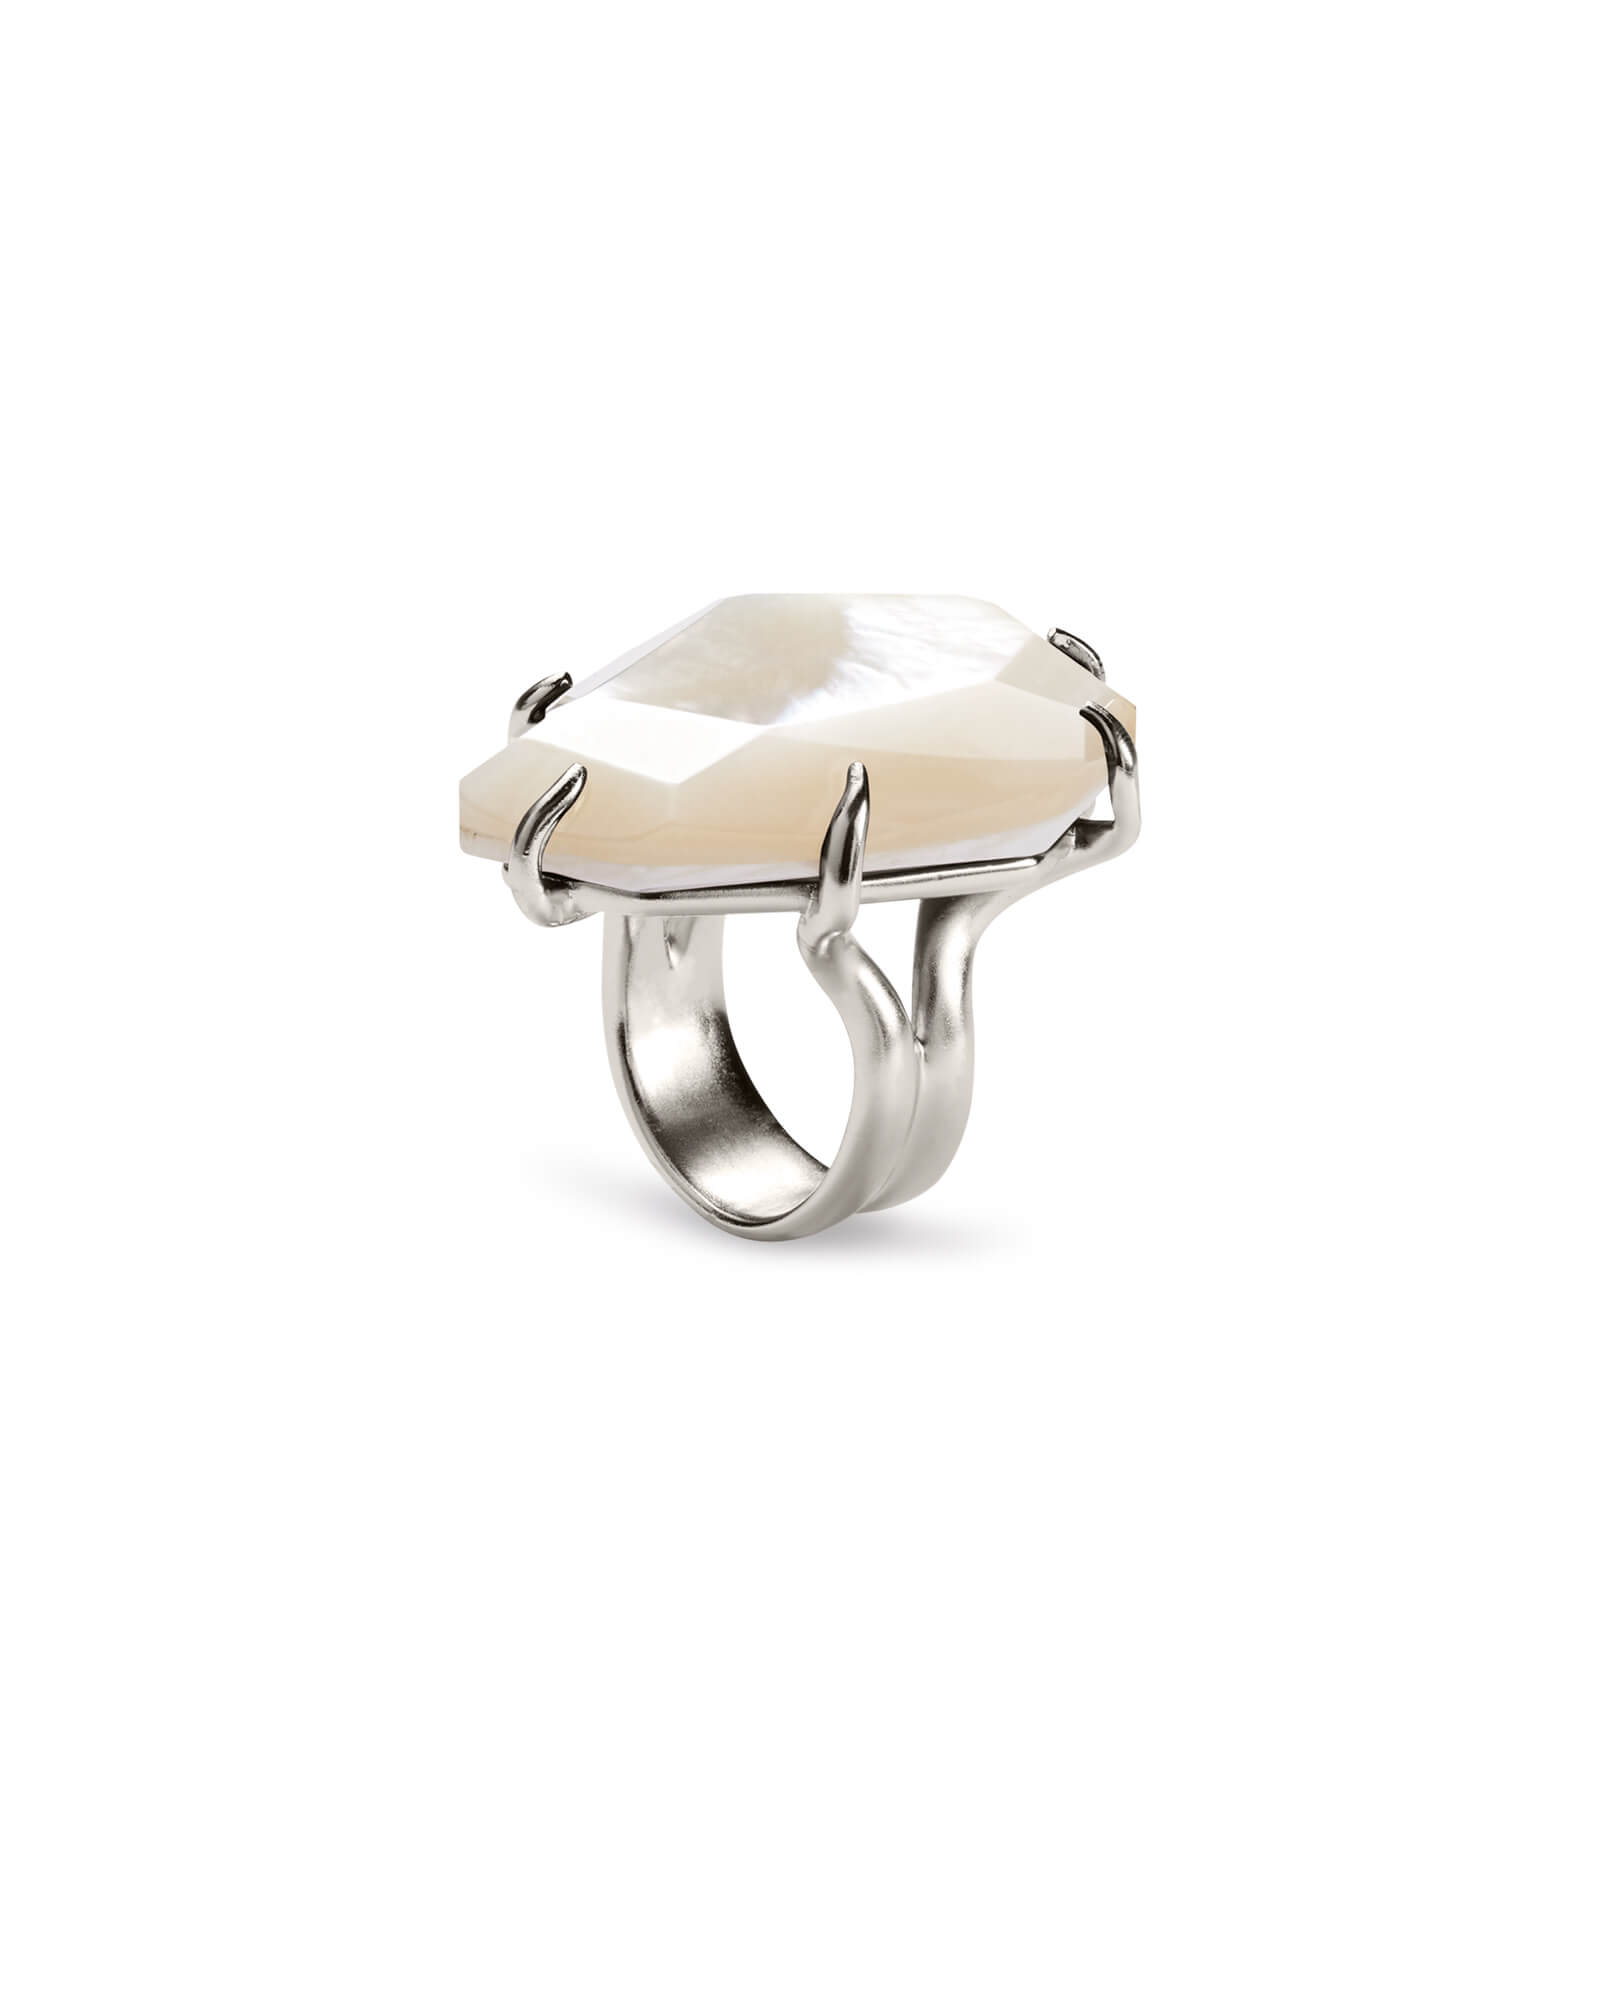 Megan Cocktail Ring in Silver